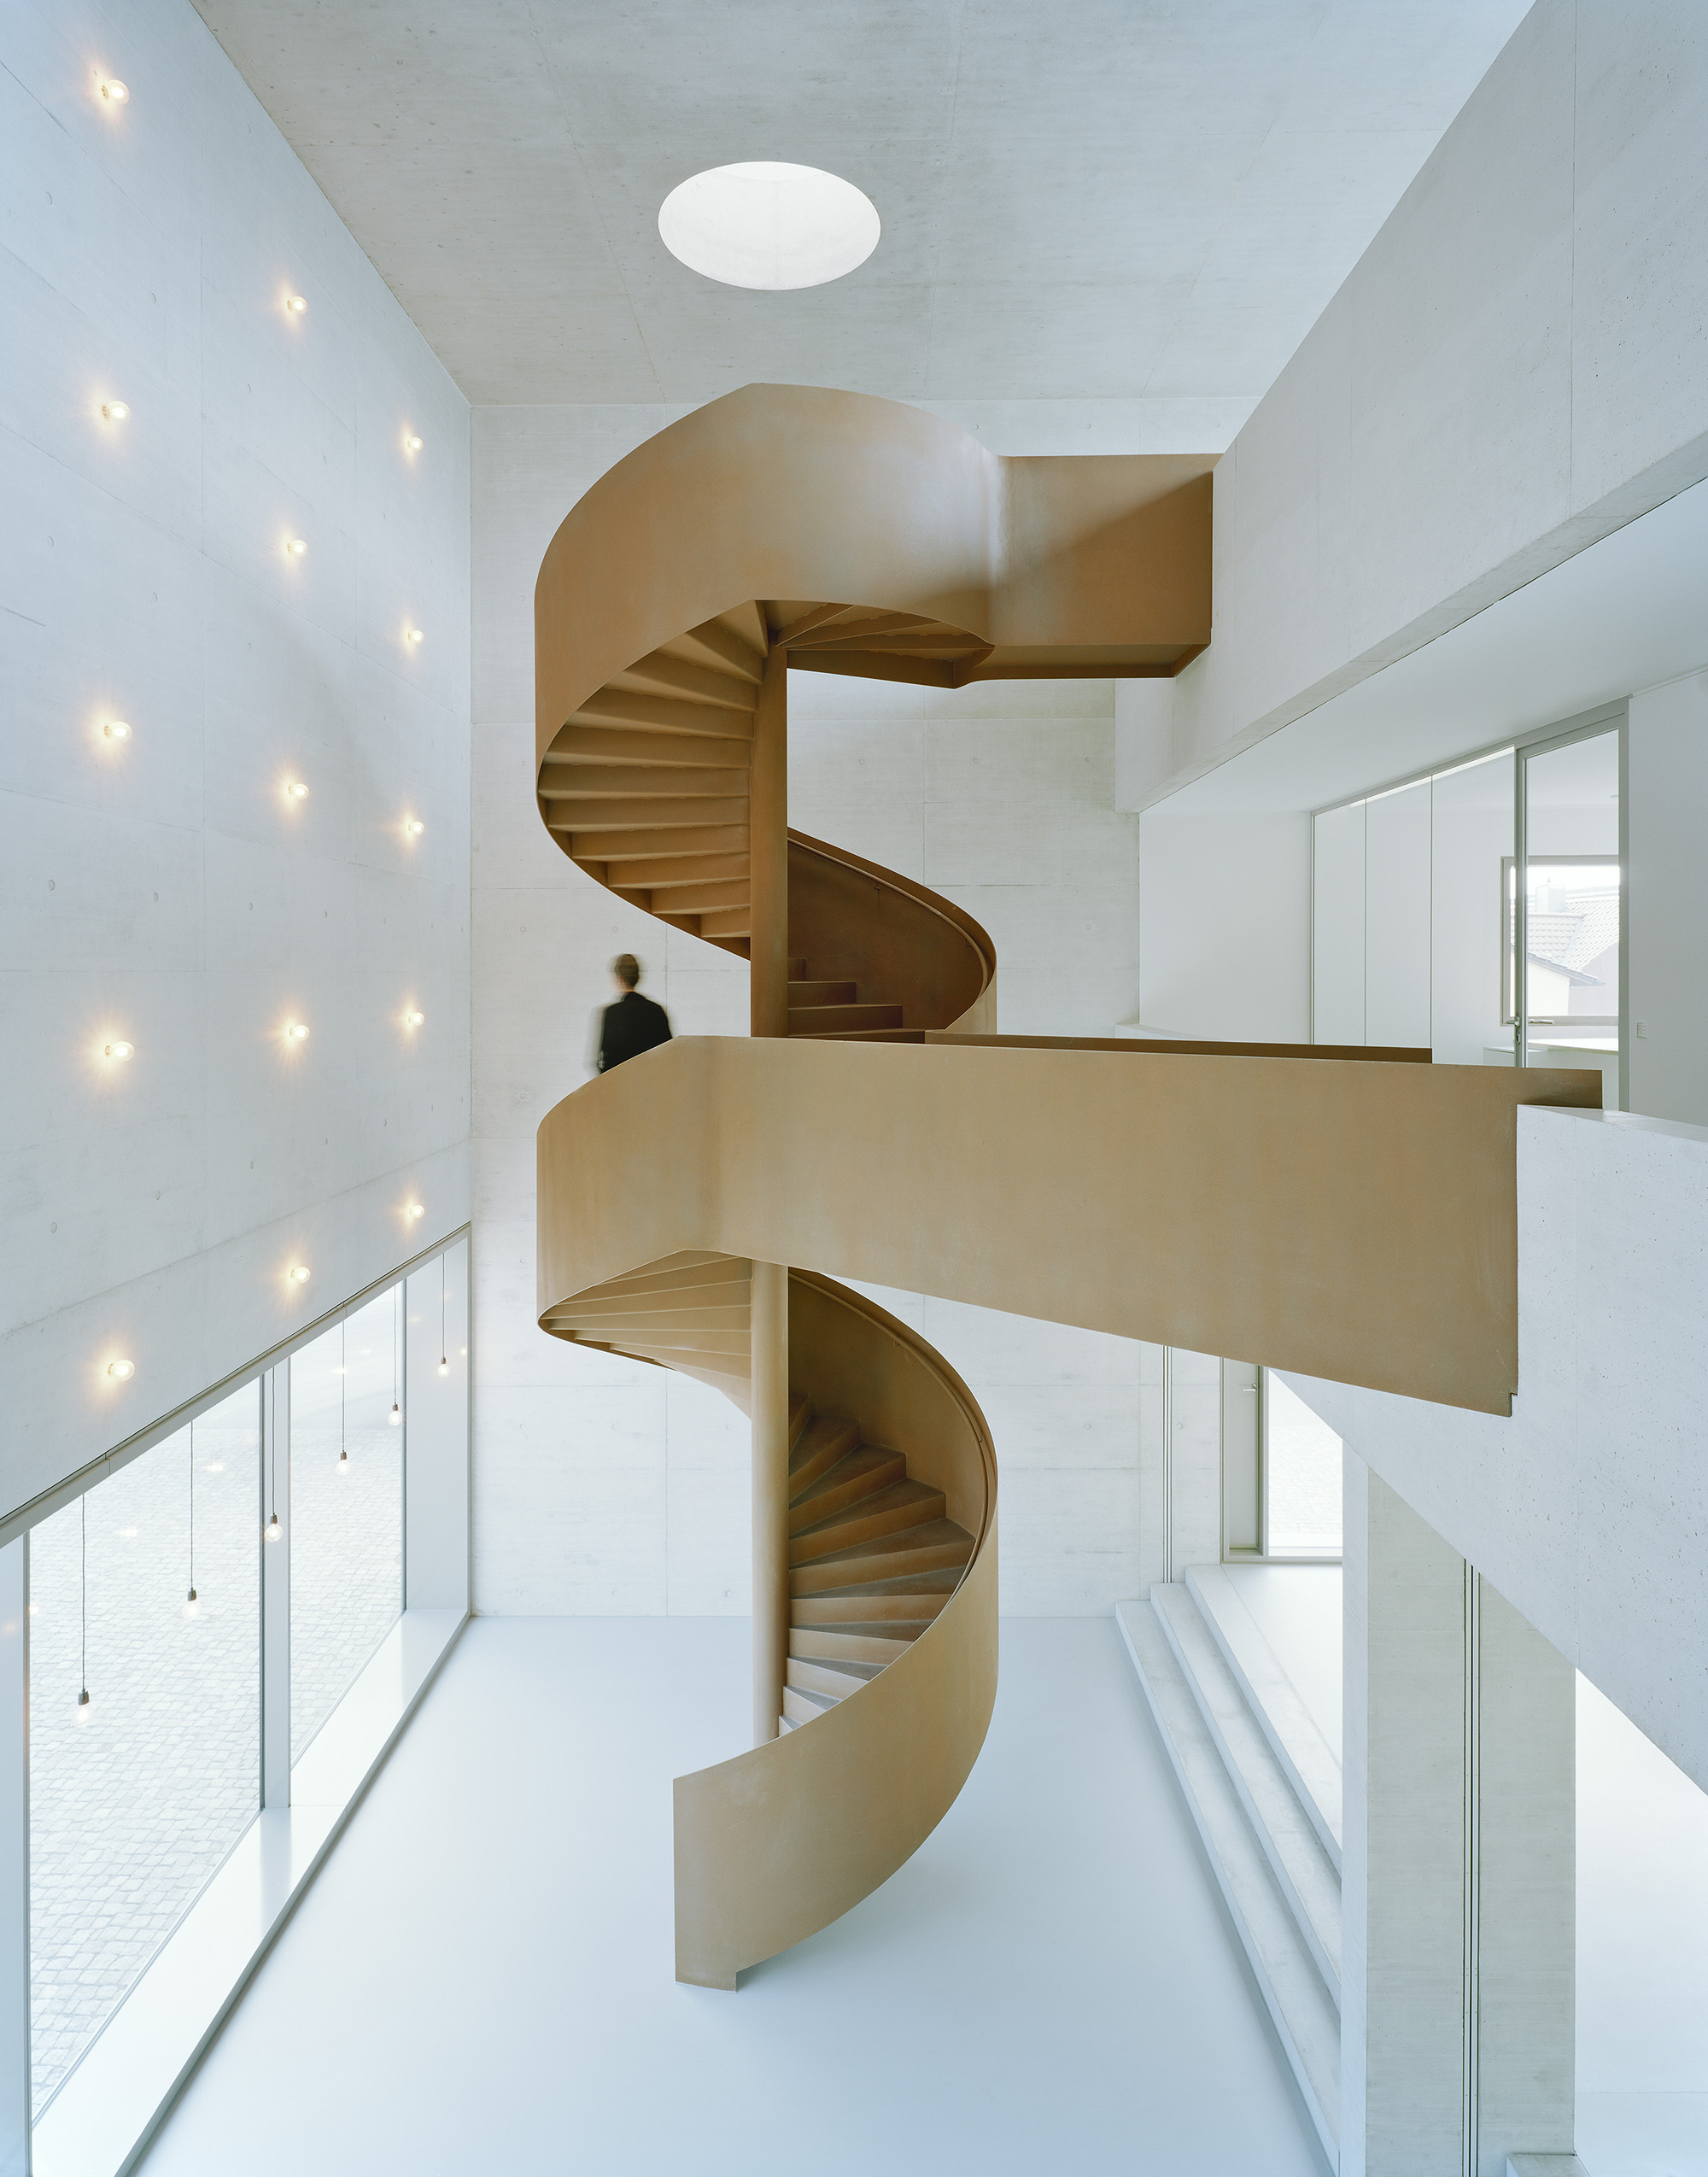 Greiner headquarter f m b architekten archdaily for Architecture spiral staircase